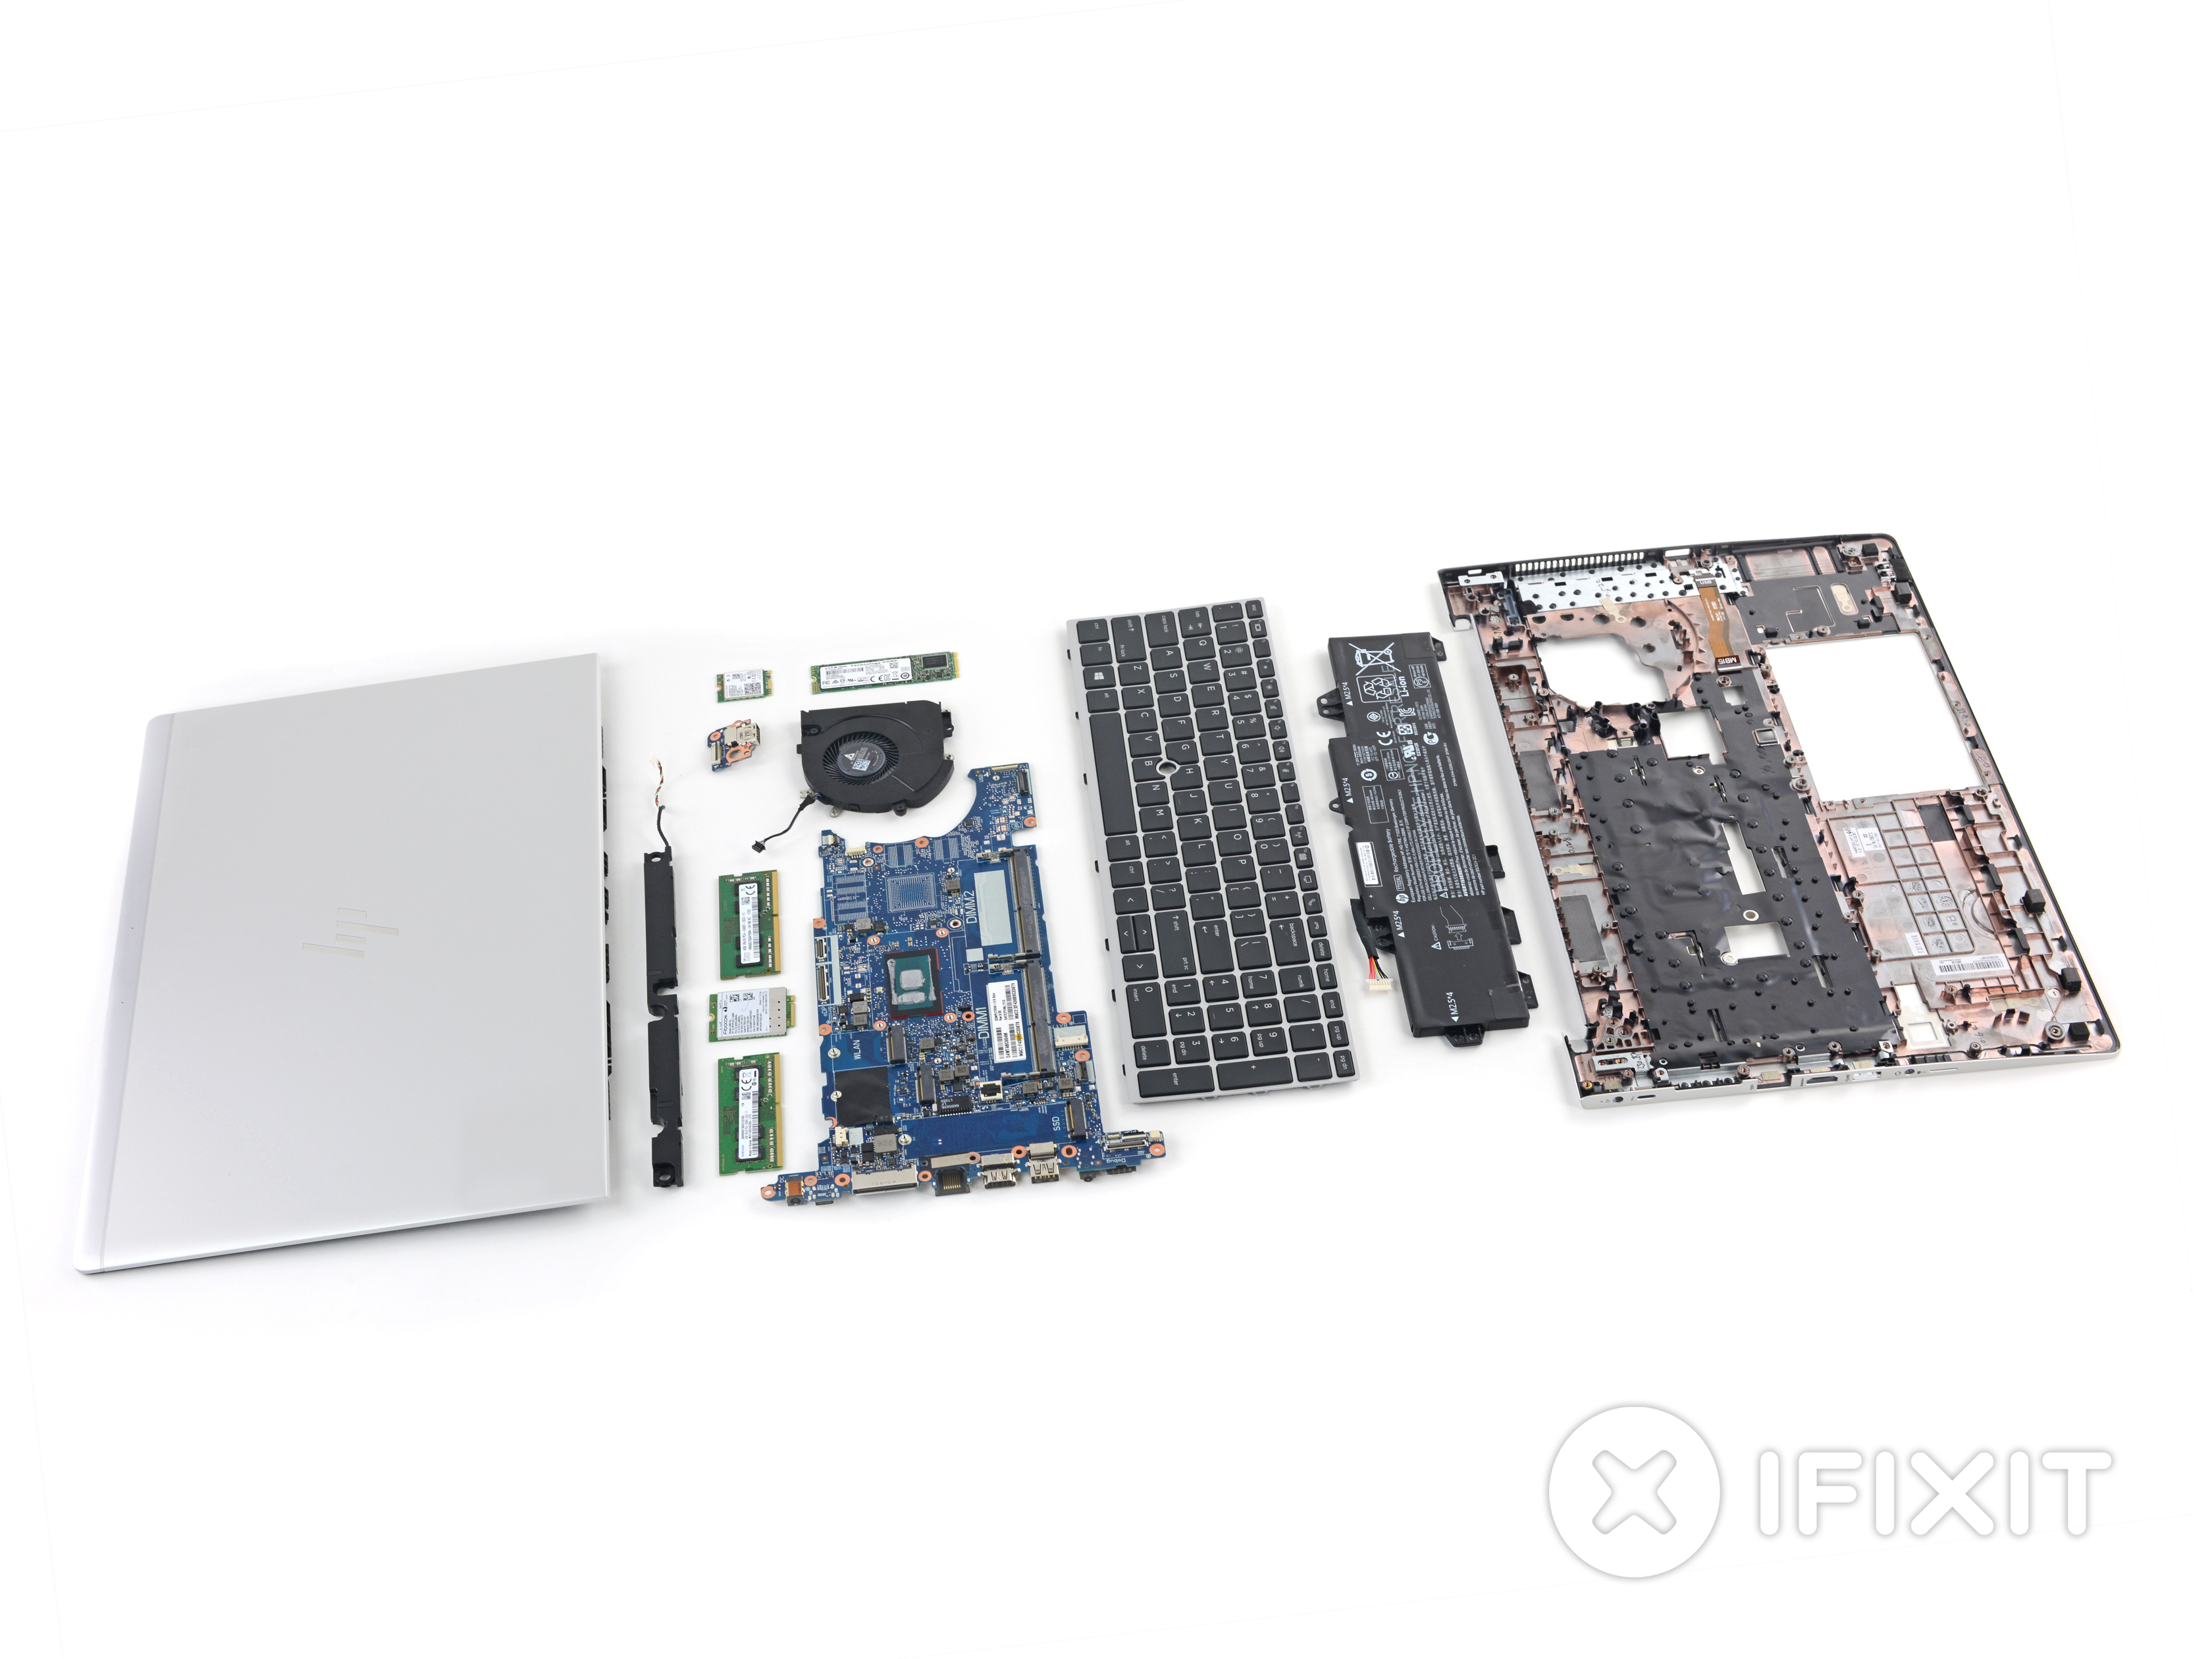 Layout of the EliteBook 800 G5 components.